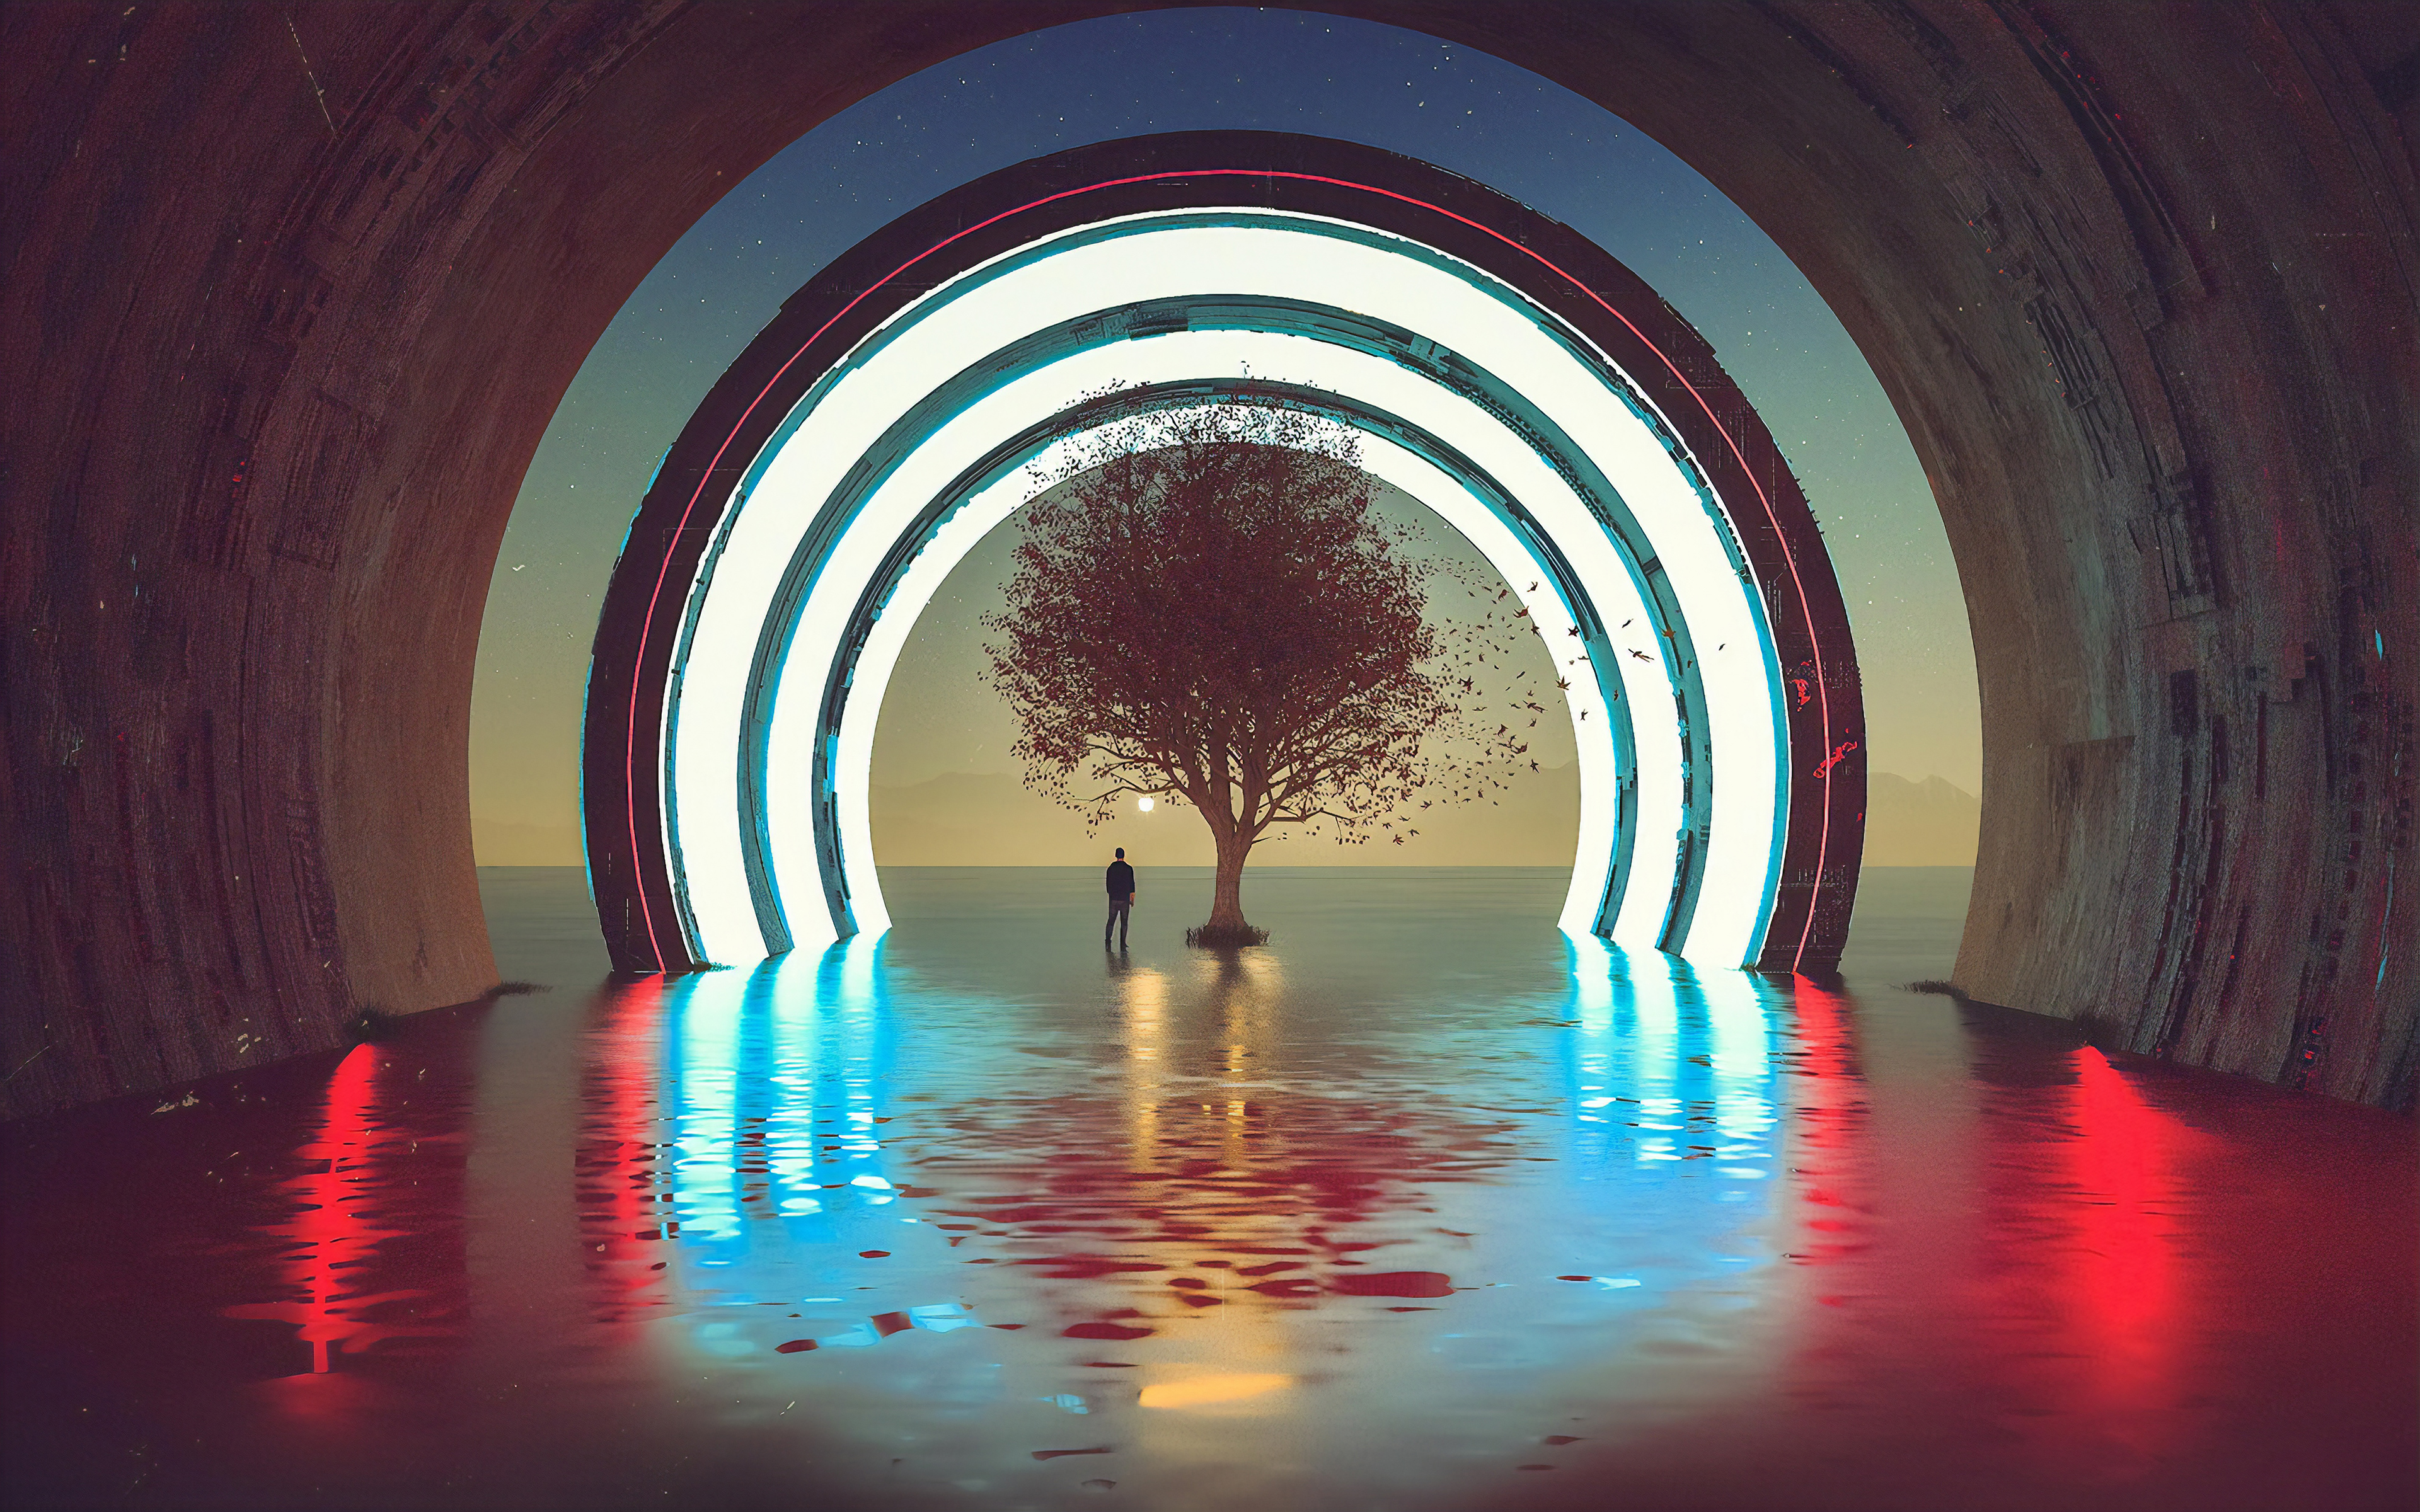 General 3840x2400 digital digital art artwork fantasy art landscape trees silhouette abstract water men outdoors men outdoors sea neon lights neon lights Sun sunset sun rays reflection tunnel science fiction surreal